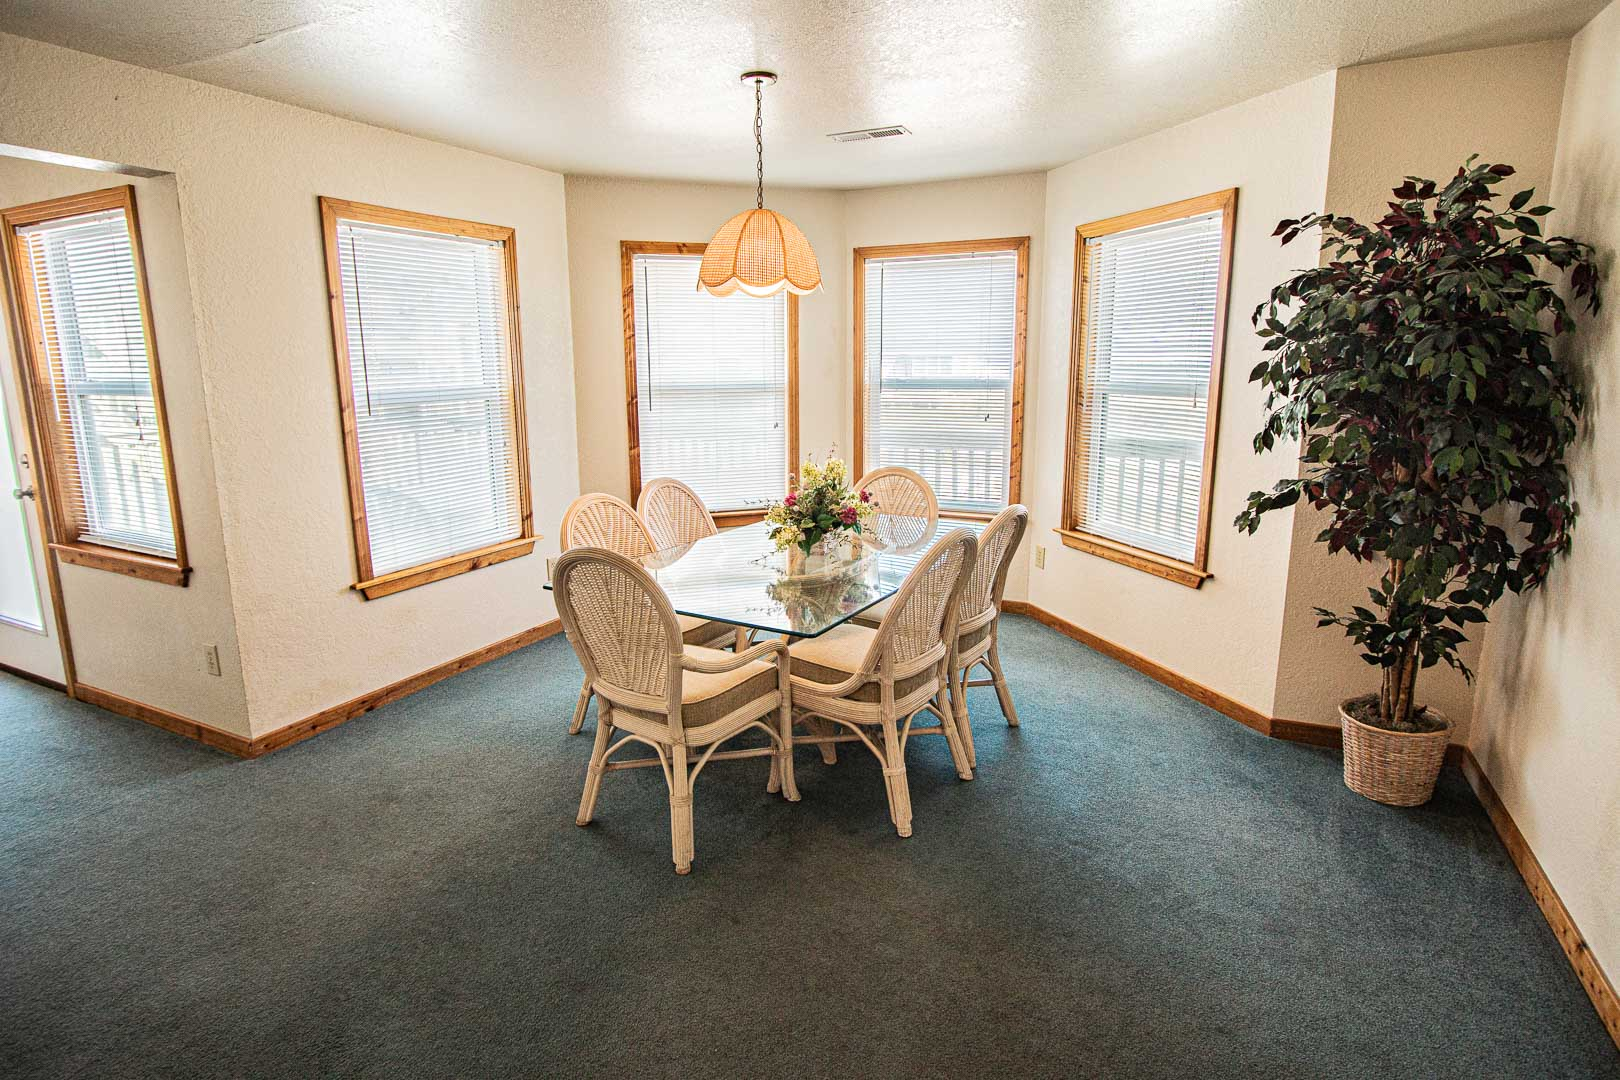 A standard dining room area at VRI's Barrier Island Station in North Carolina.